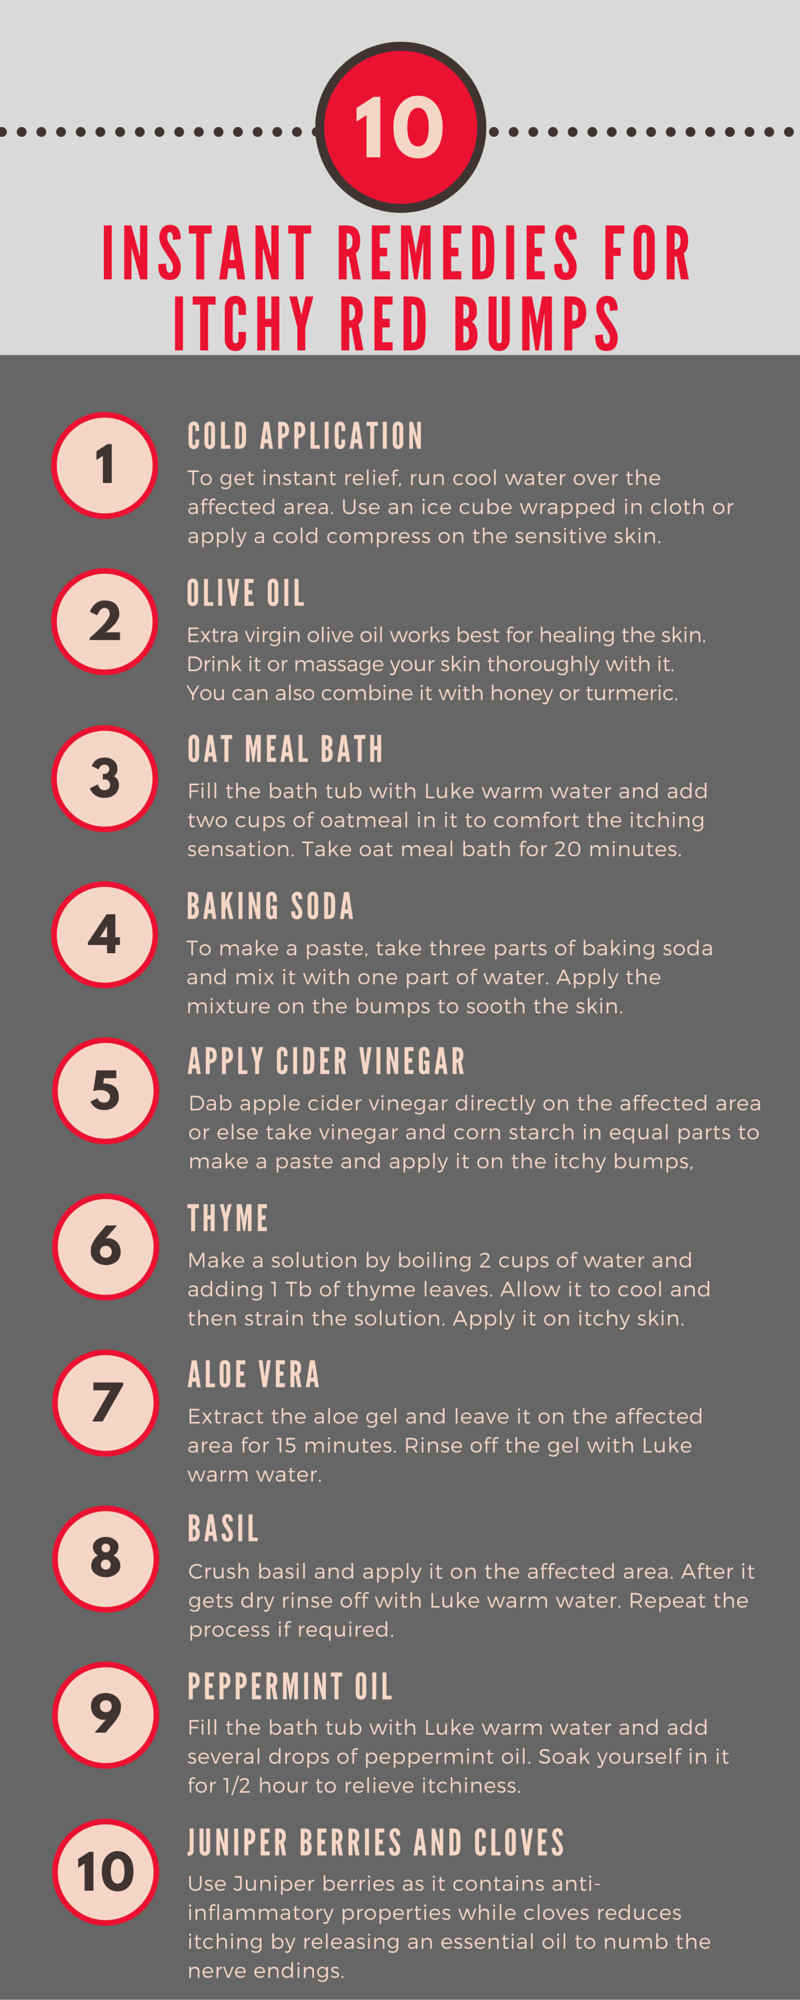 Infographic Top 10 Ways To Treat Red Itchy Bumps In 30 Minutes Or Less 7 Works Great Care Calm Skin Bumps Itchy Bumps Itchy Red Bumps